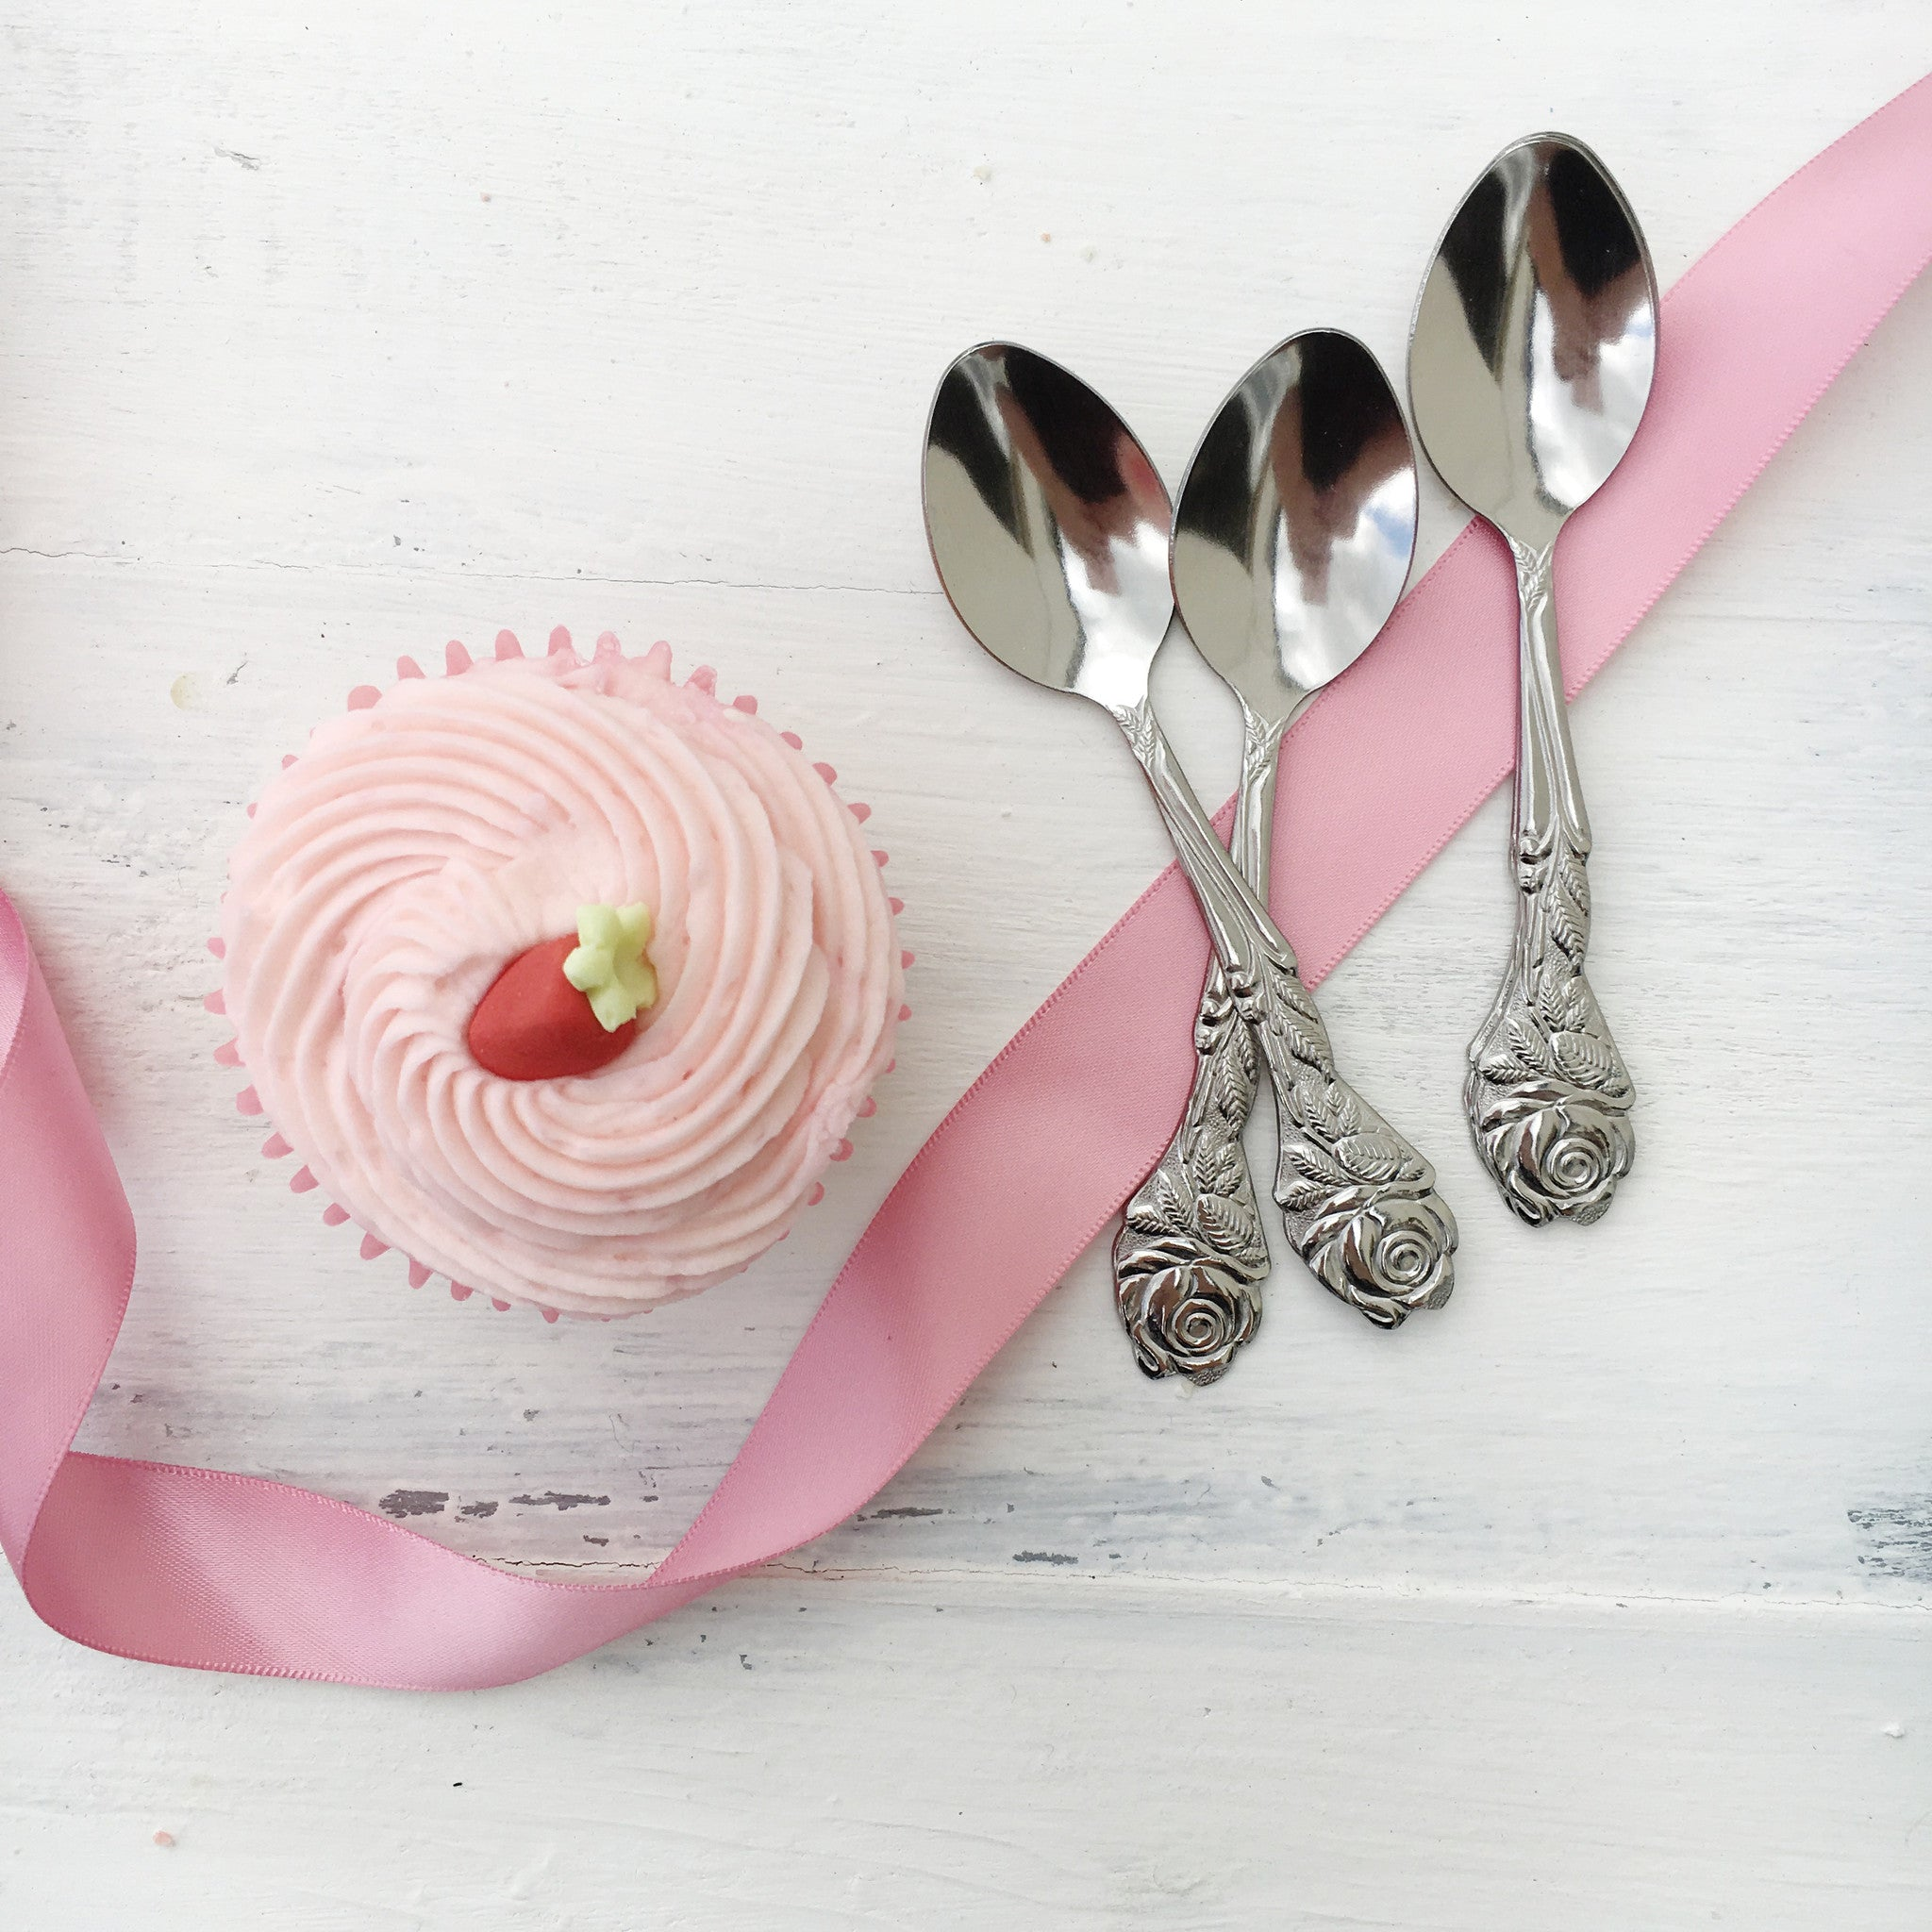 Small Rose Tea Spoons - The Sweet Hostess  - 1